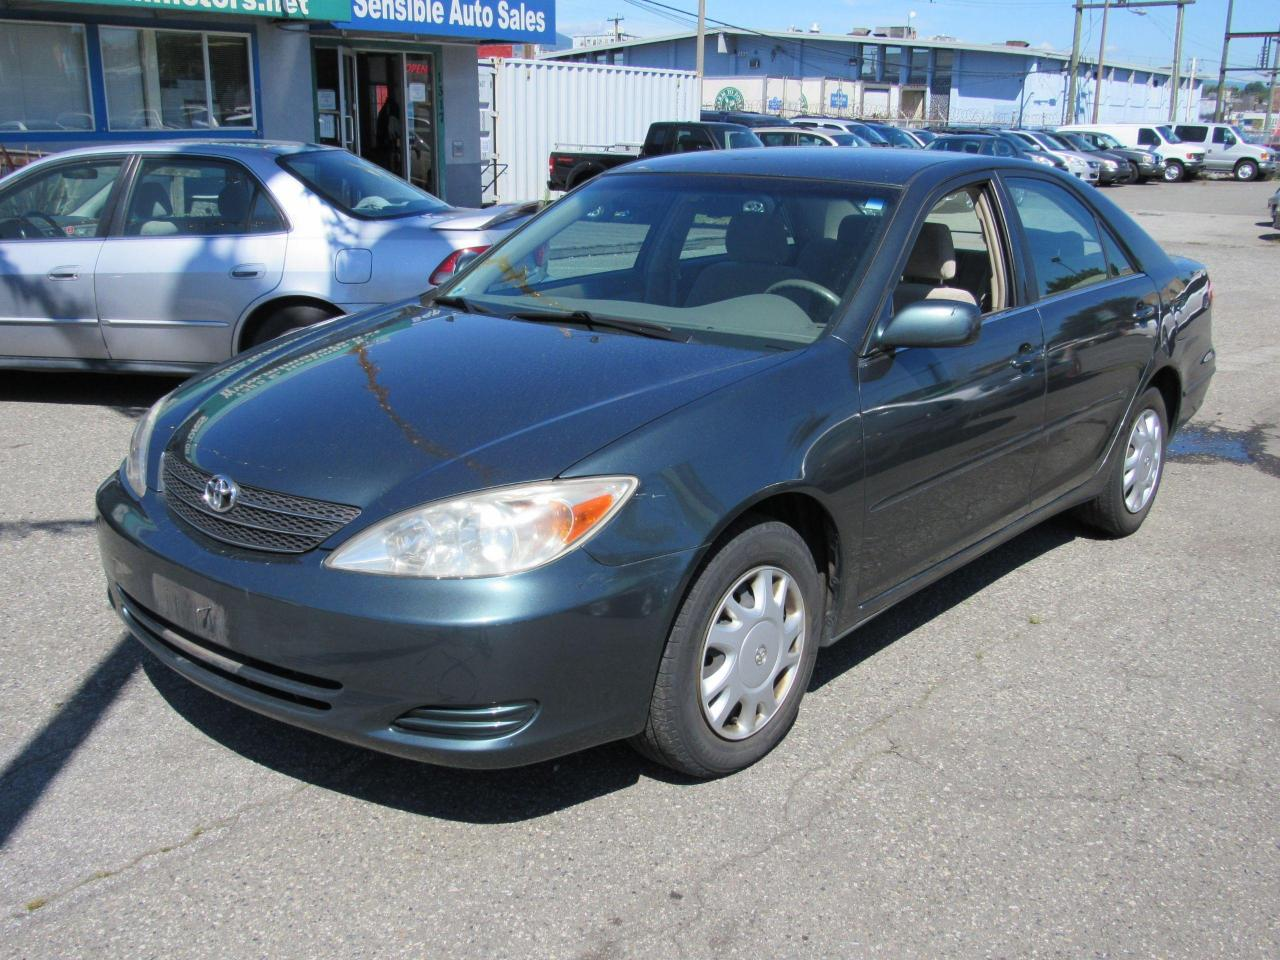 used 2002 toyota camry le for sale in vancouver, british columbia carpages.ca